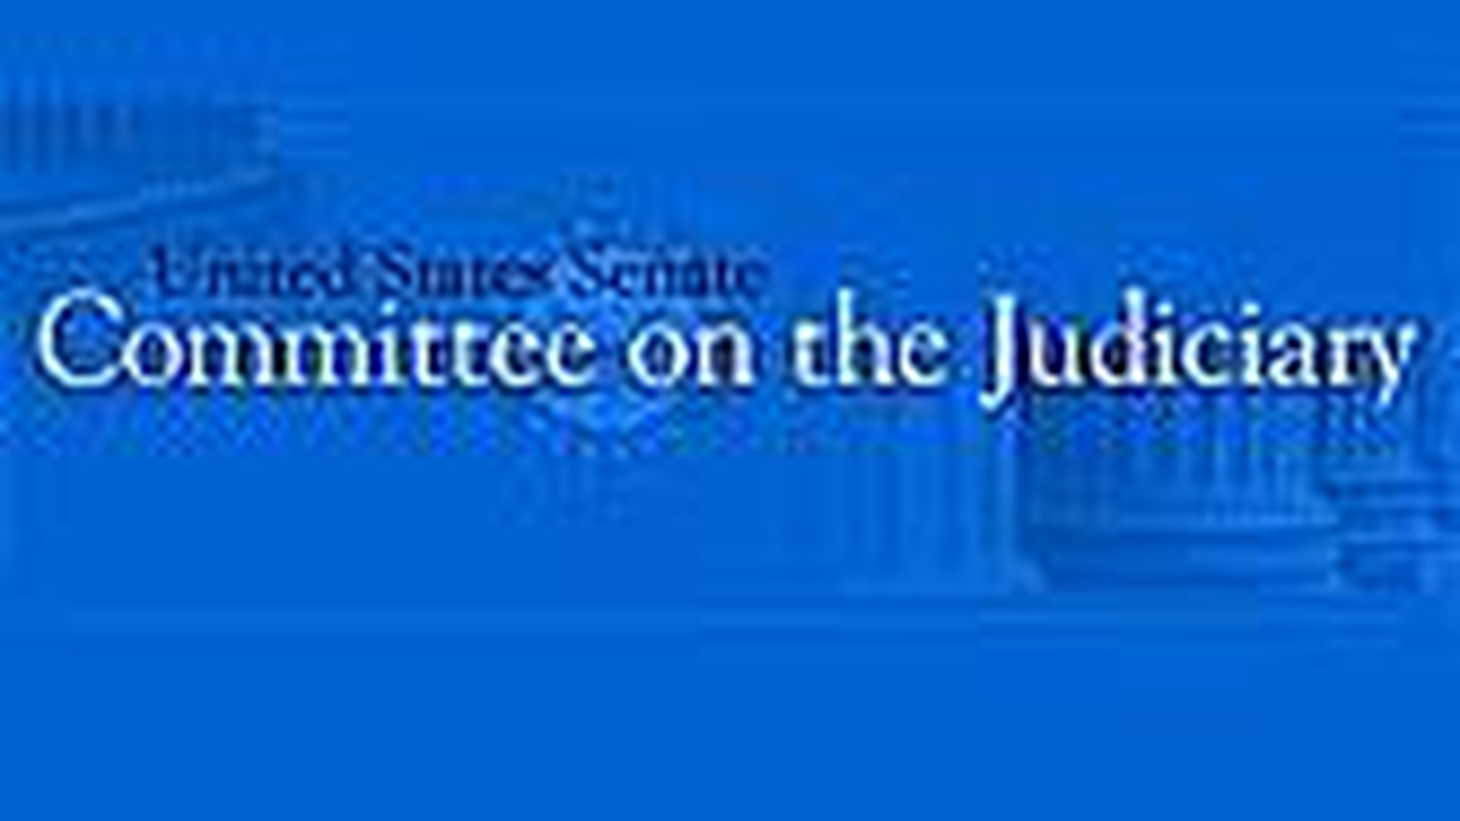 KCRW will air NPR's recap of the Senate Judiciary Committee's hearing on the Department of Justice Oversight beginning at 6:30 pm PST. This one hour special will offer highlights of the Gonzales testimony anchored by Neal Conan.